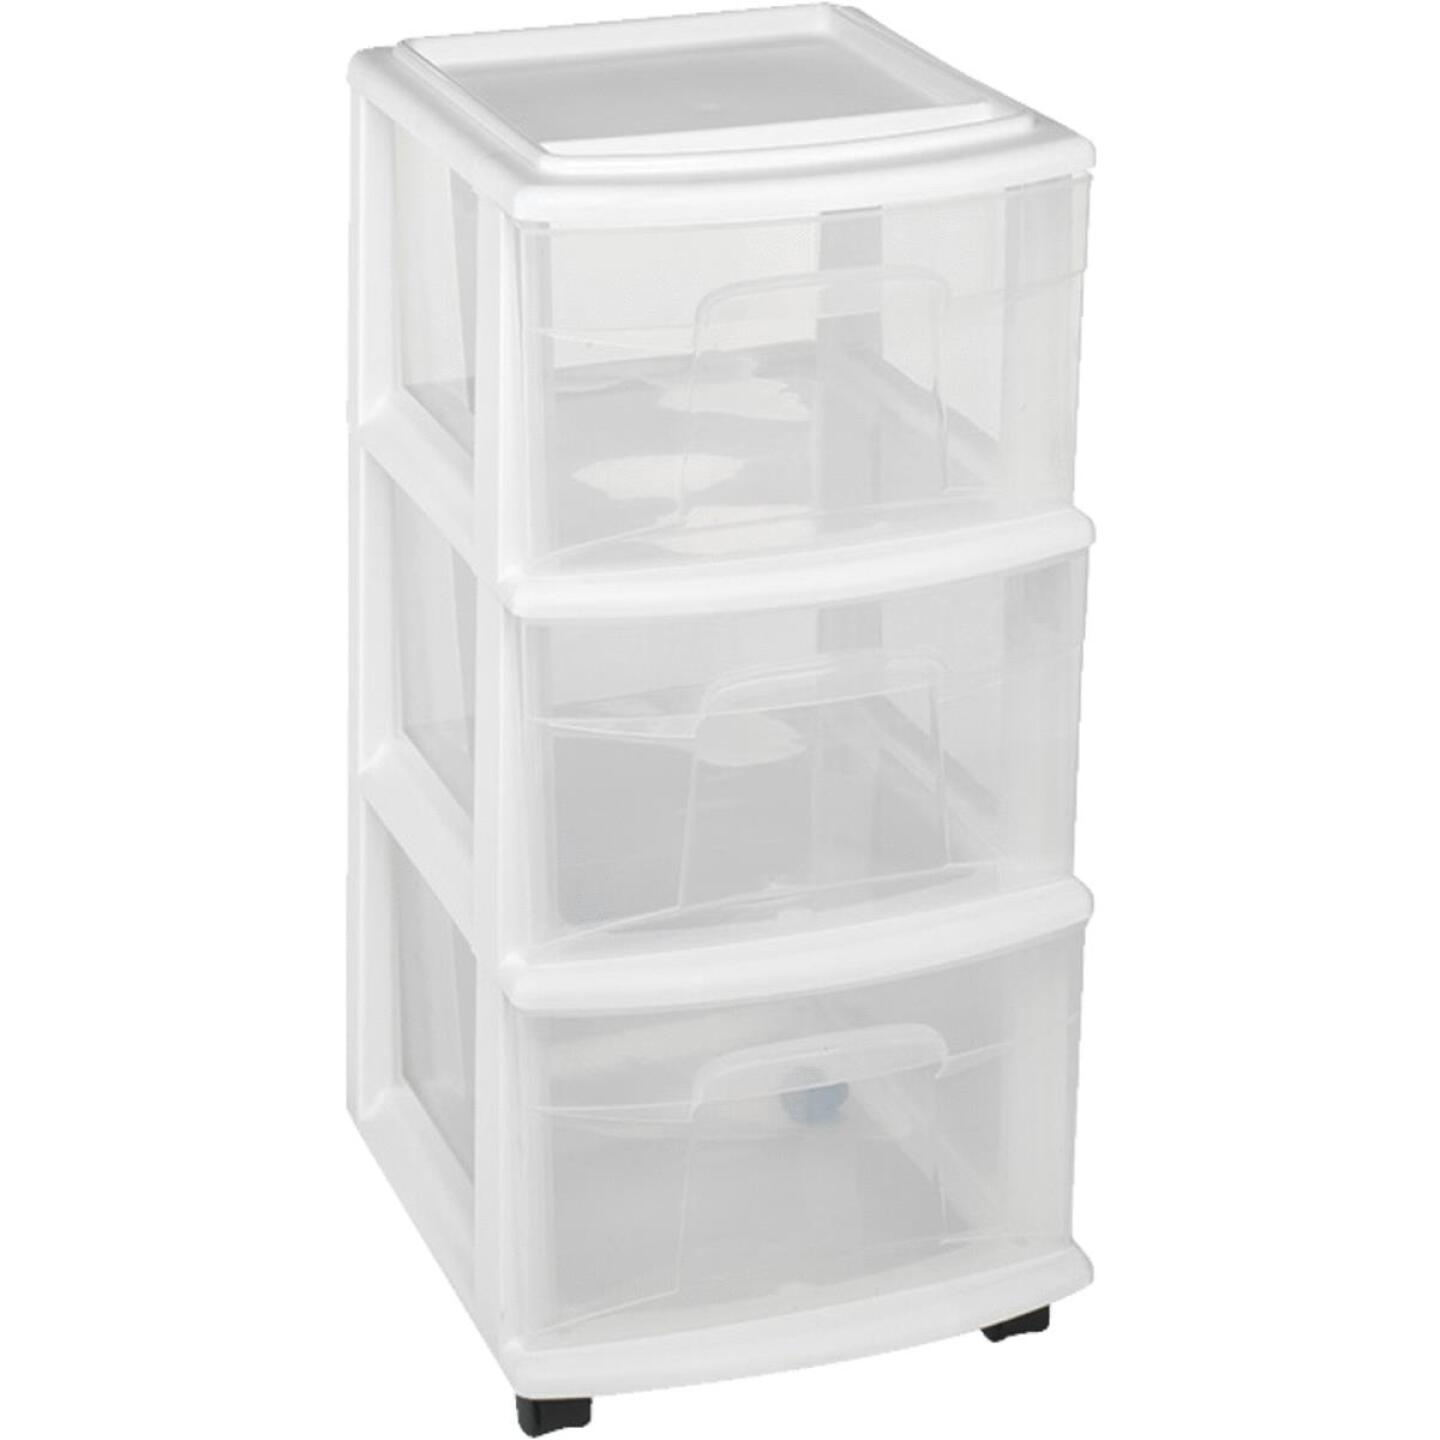 Homz 12 In. x 27 In. x 14 In. White 3-Drawer Storage Unit with Castors Image 1